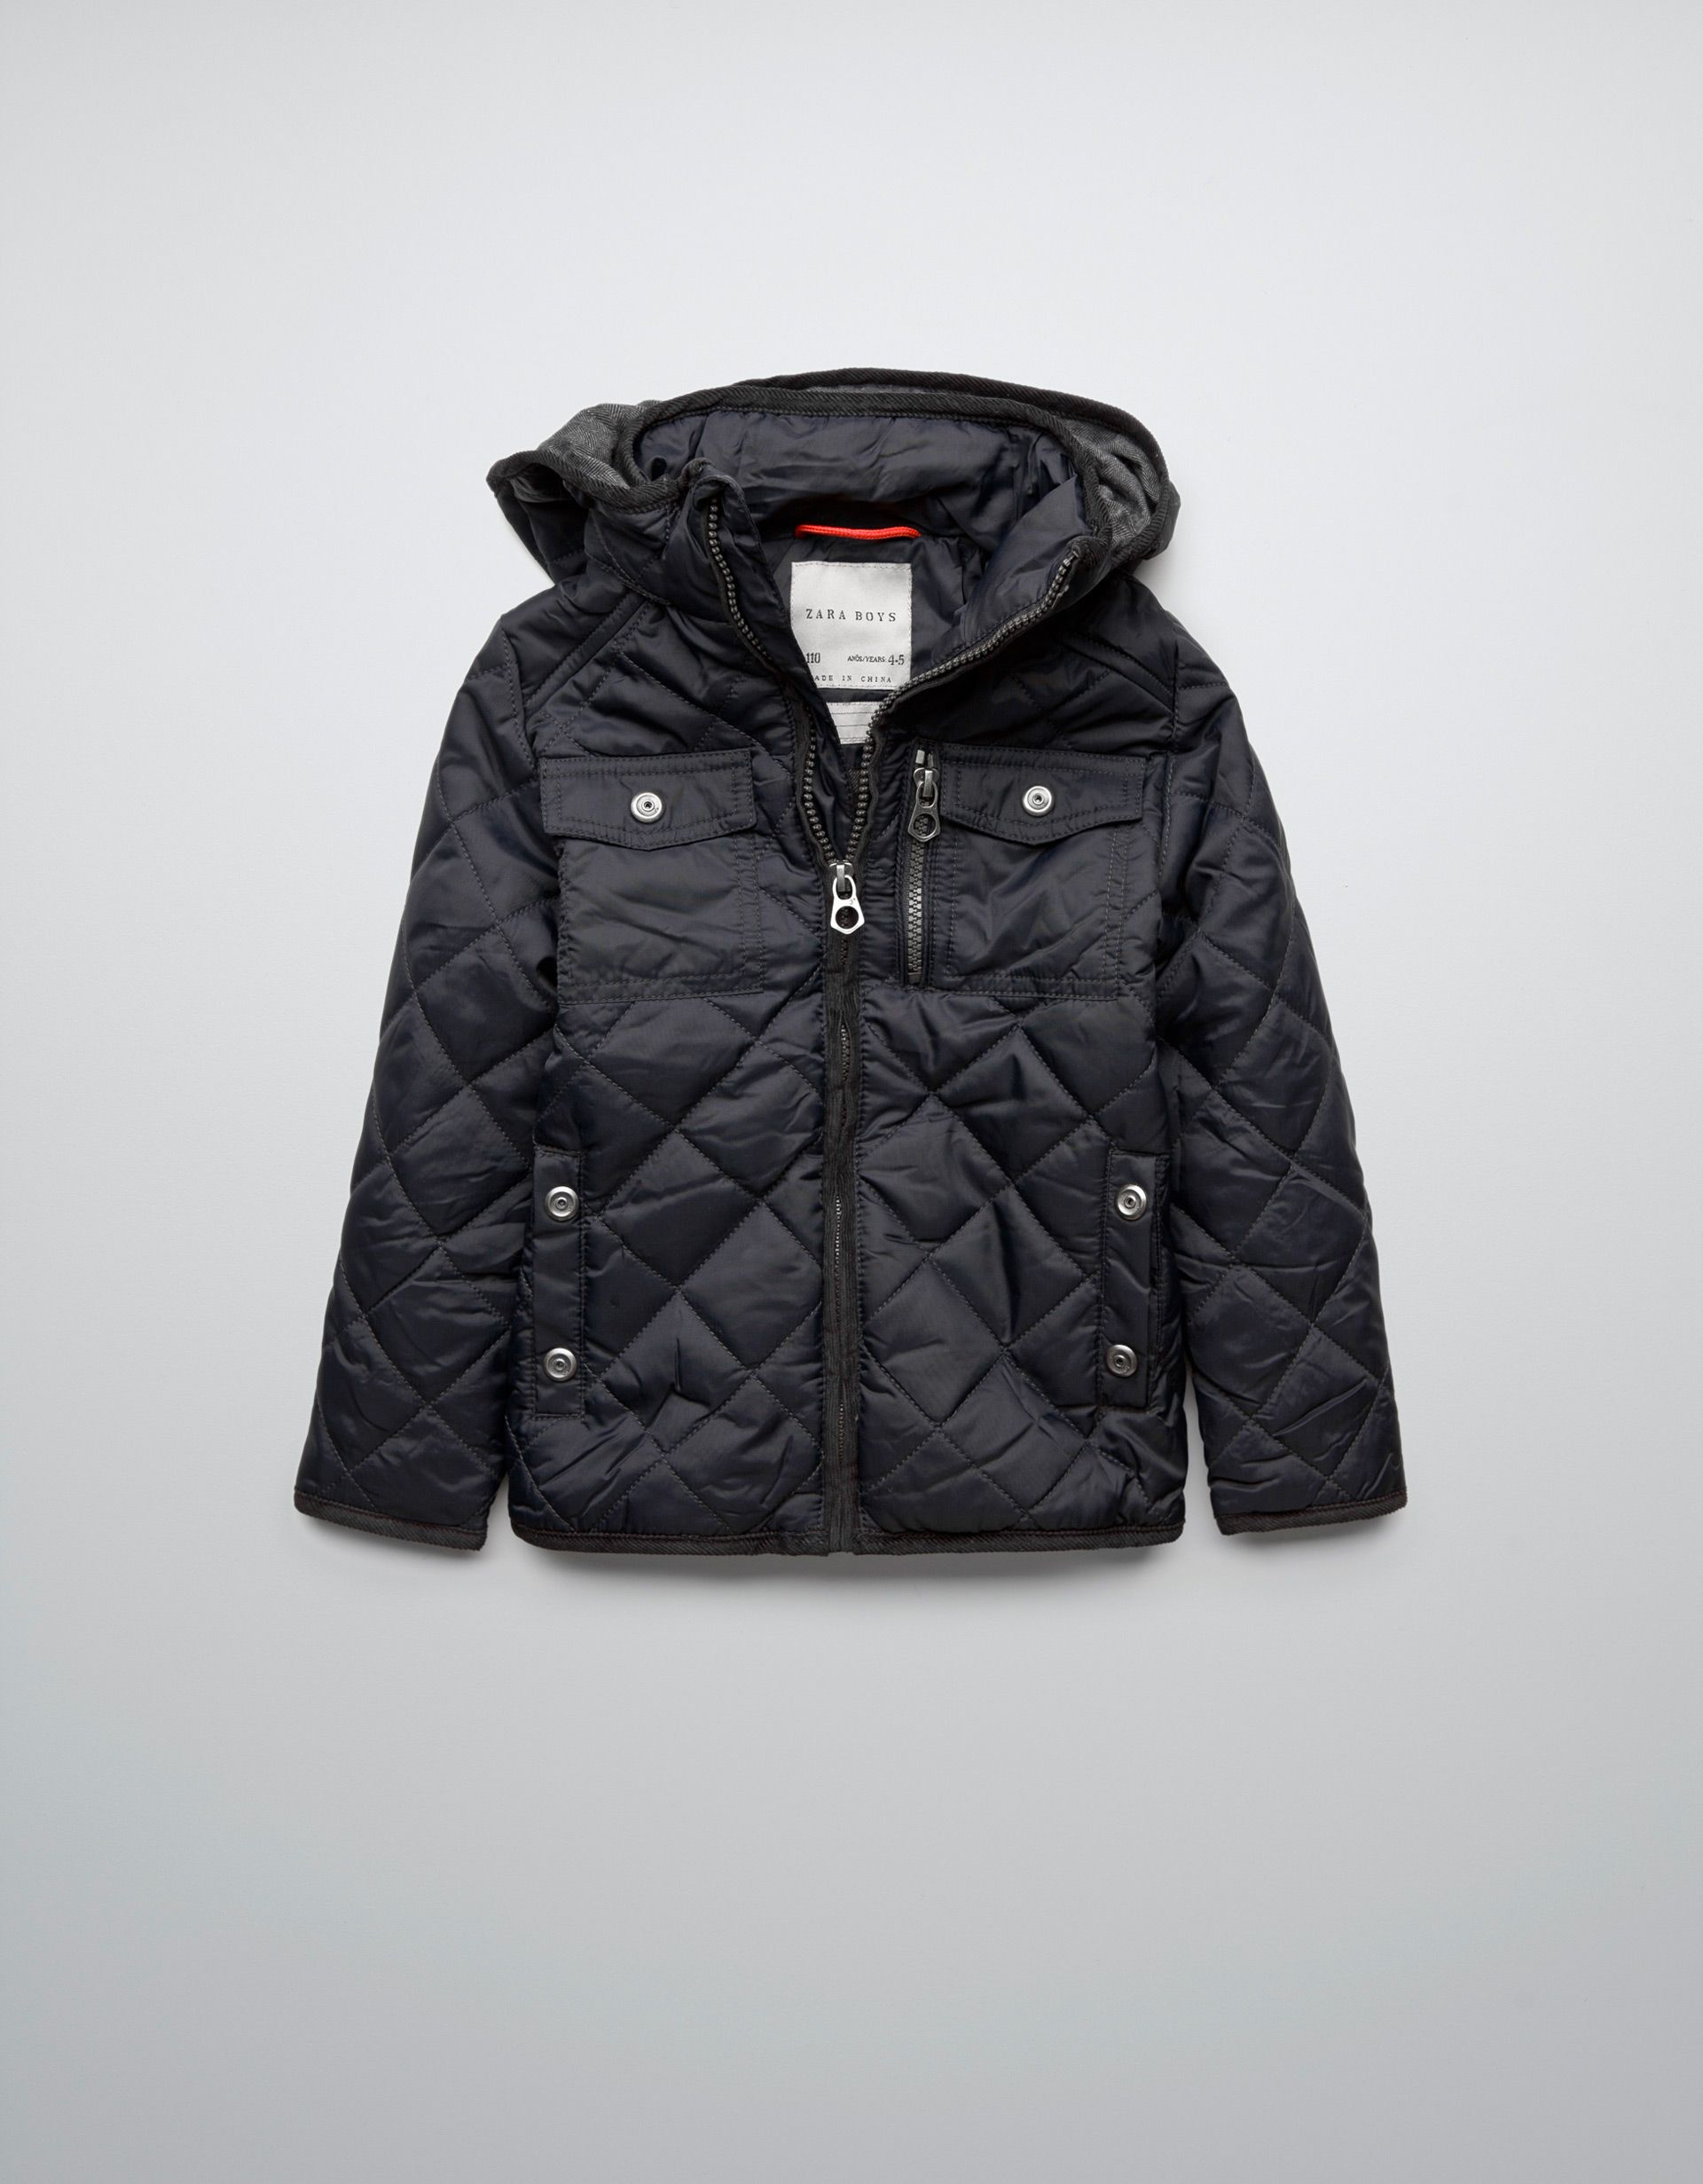 89d1c127c703 QUILTED JACKET - ZARA